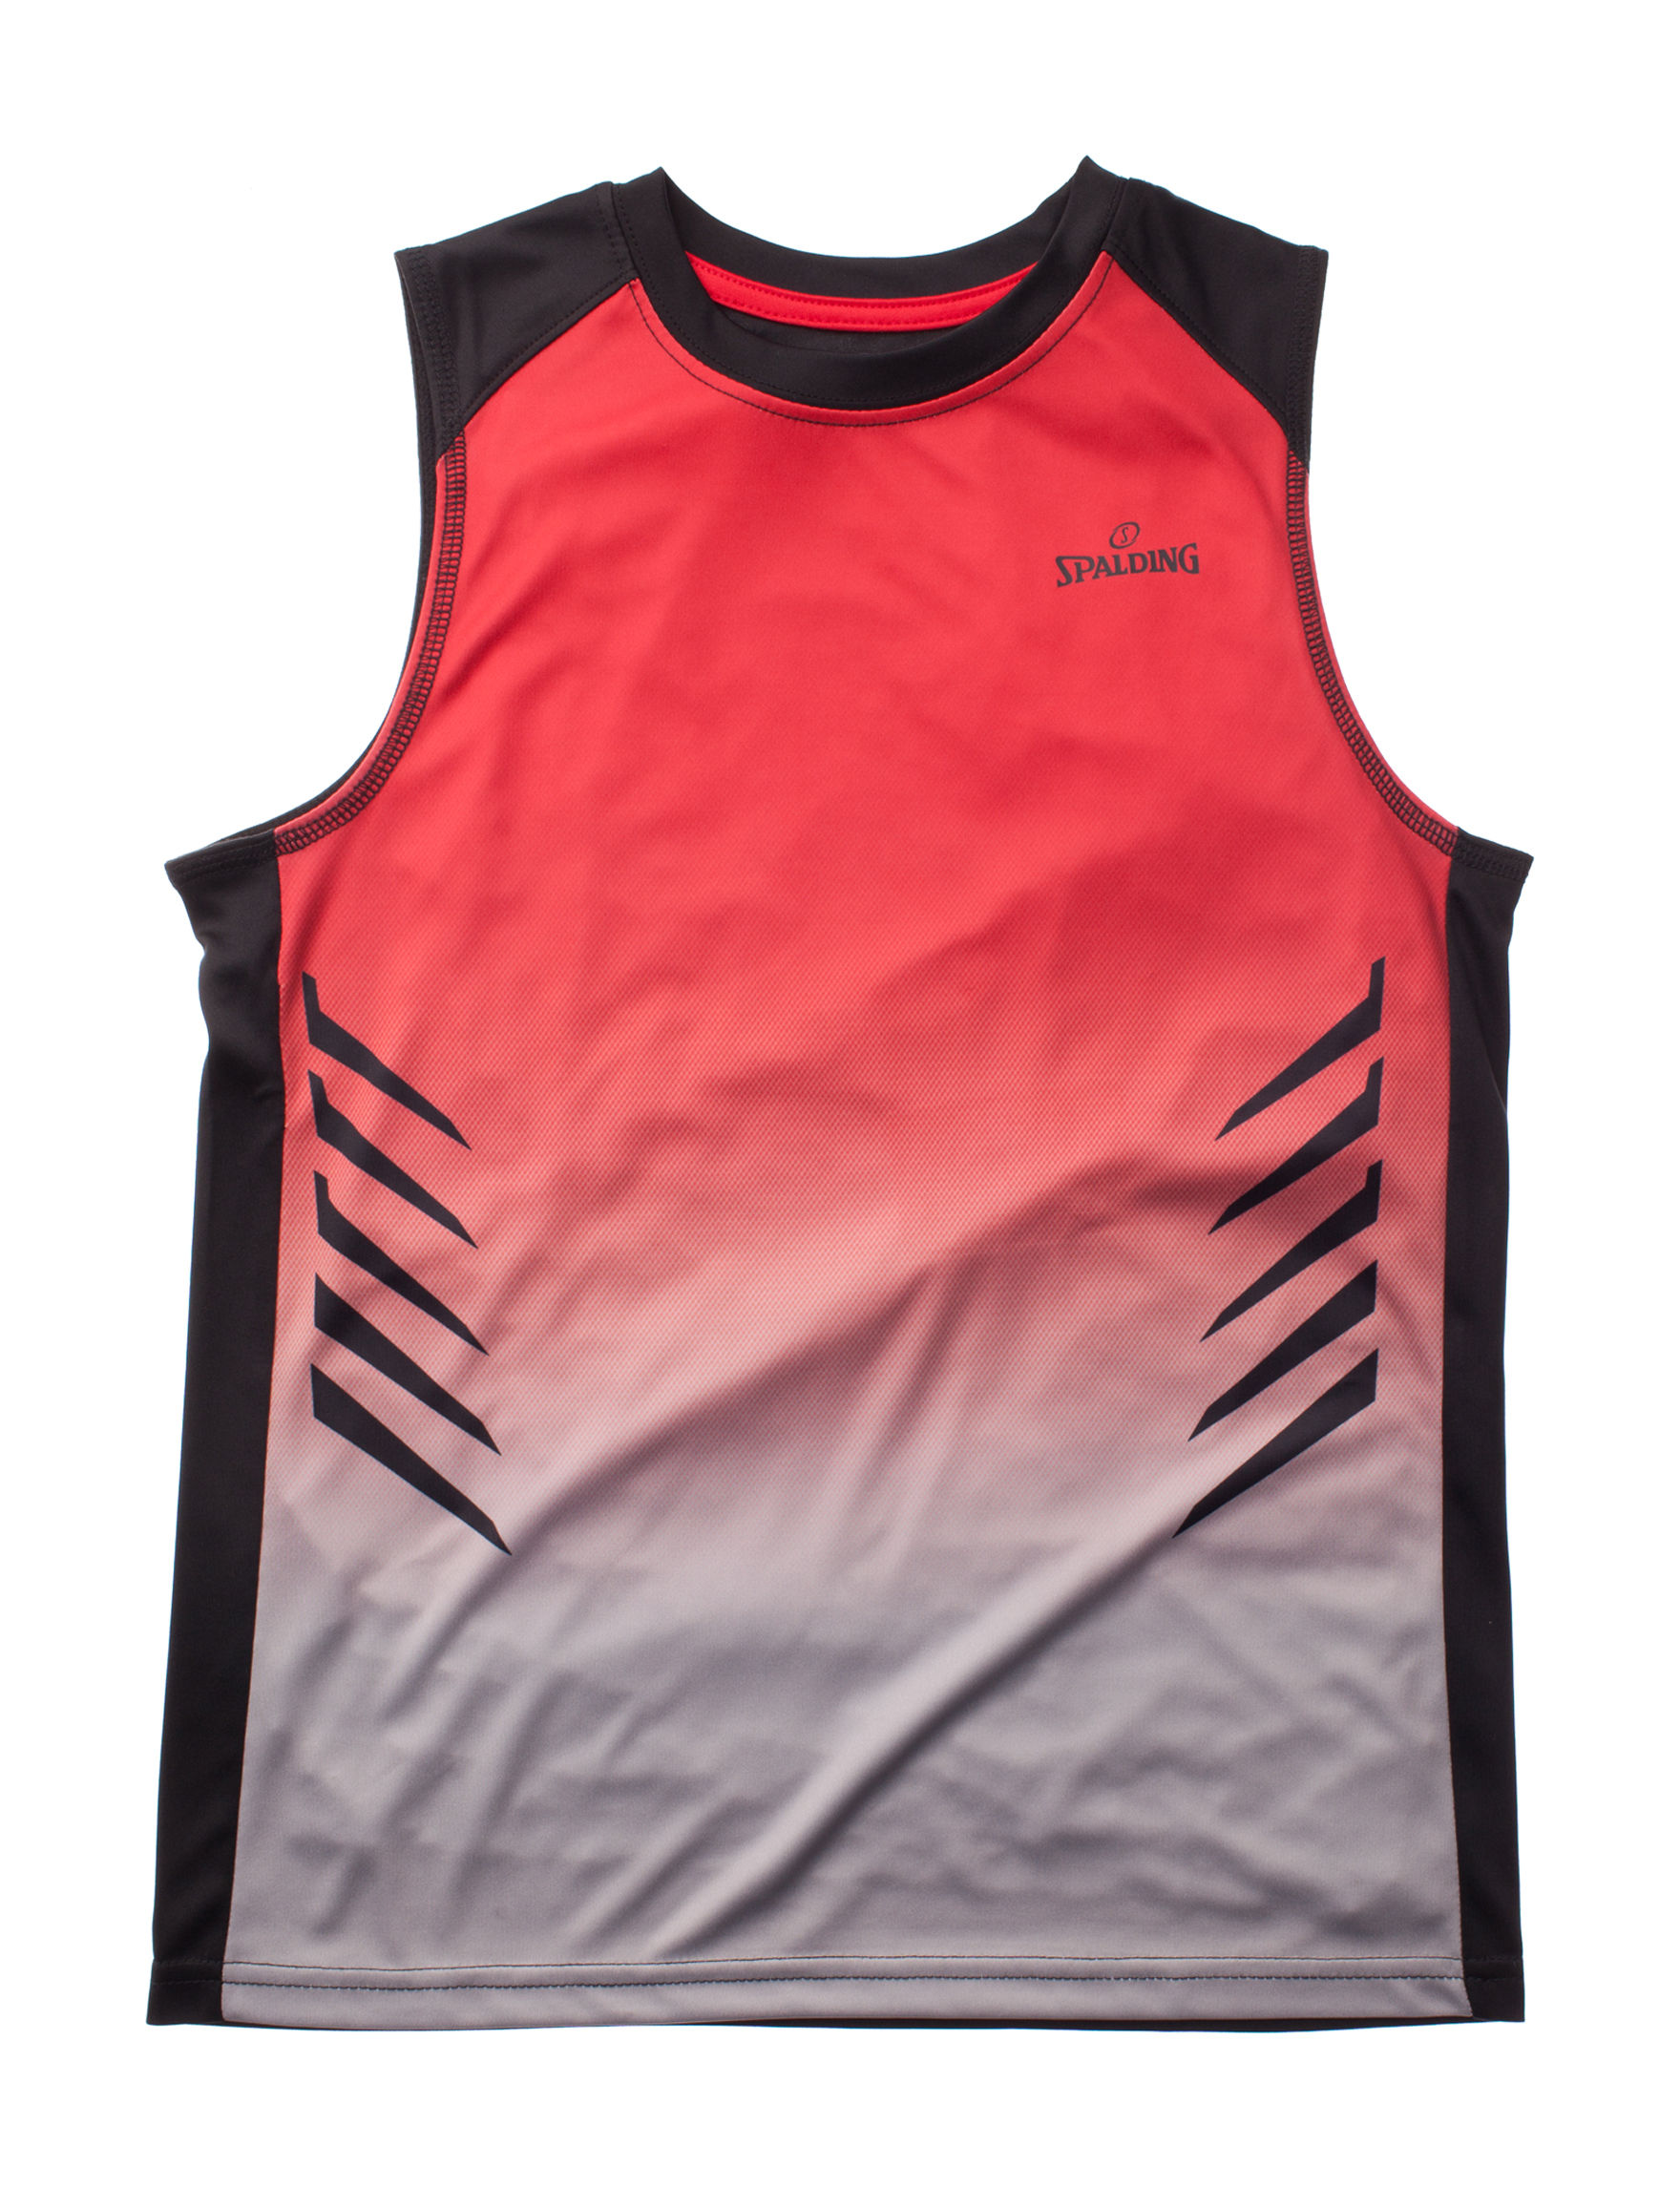 Spalding Red Tees & Tanks